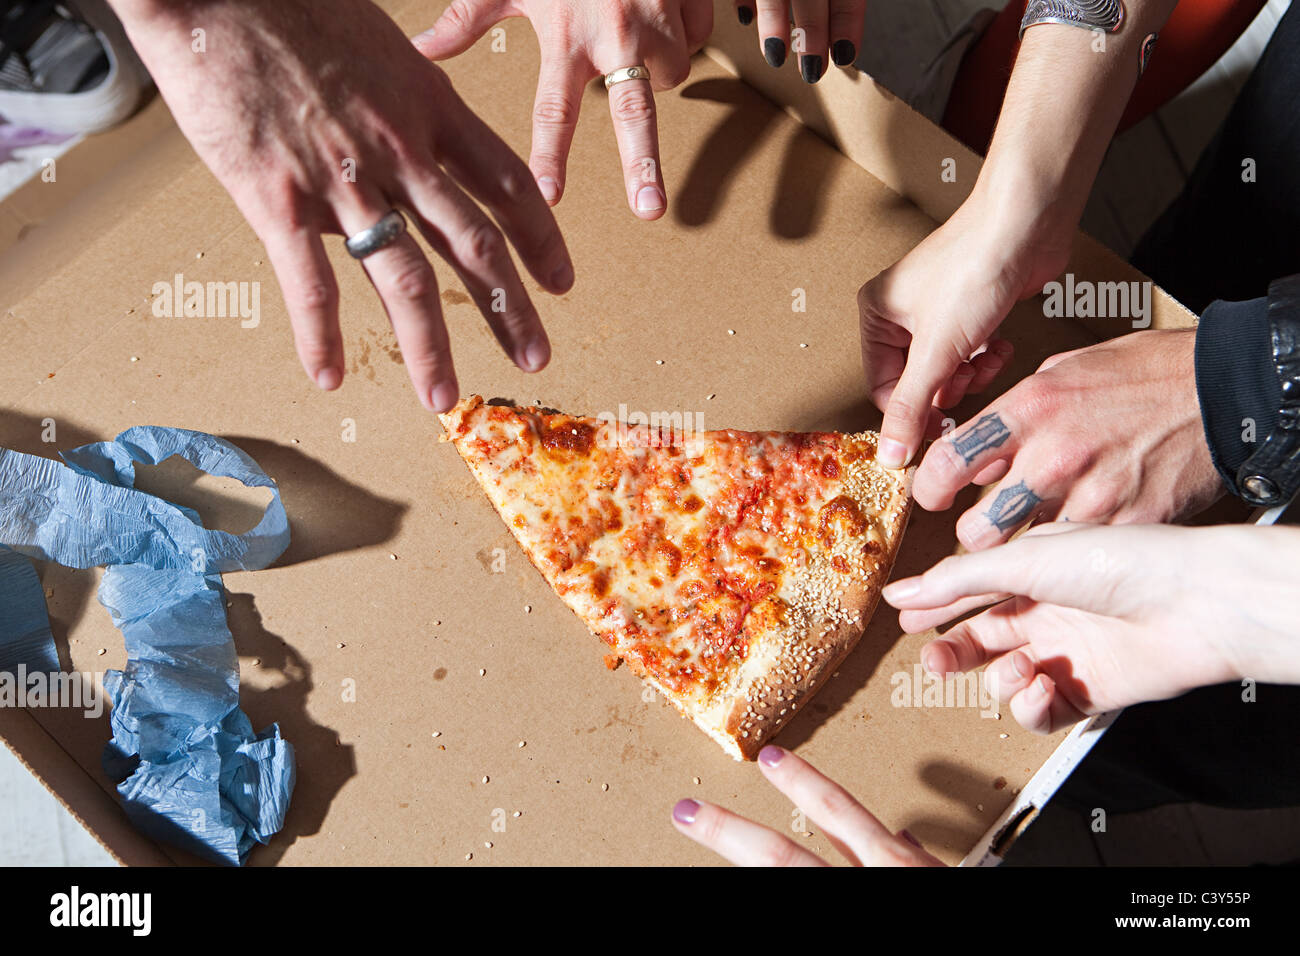 People taking slice of pizza at party - Stock Image